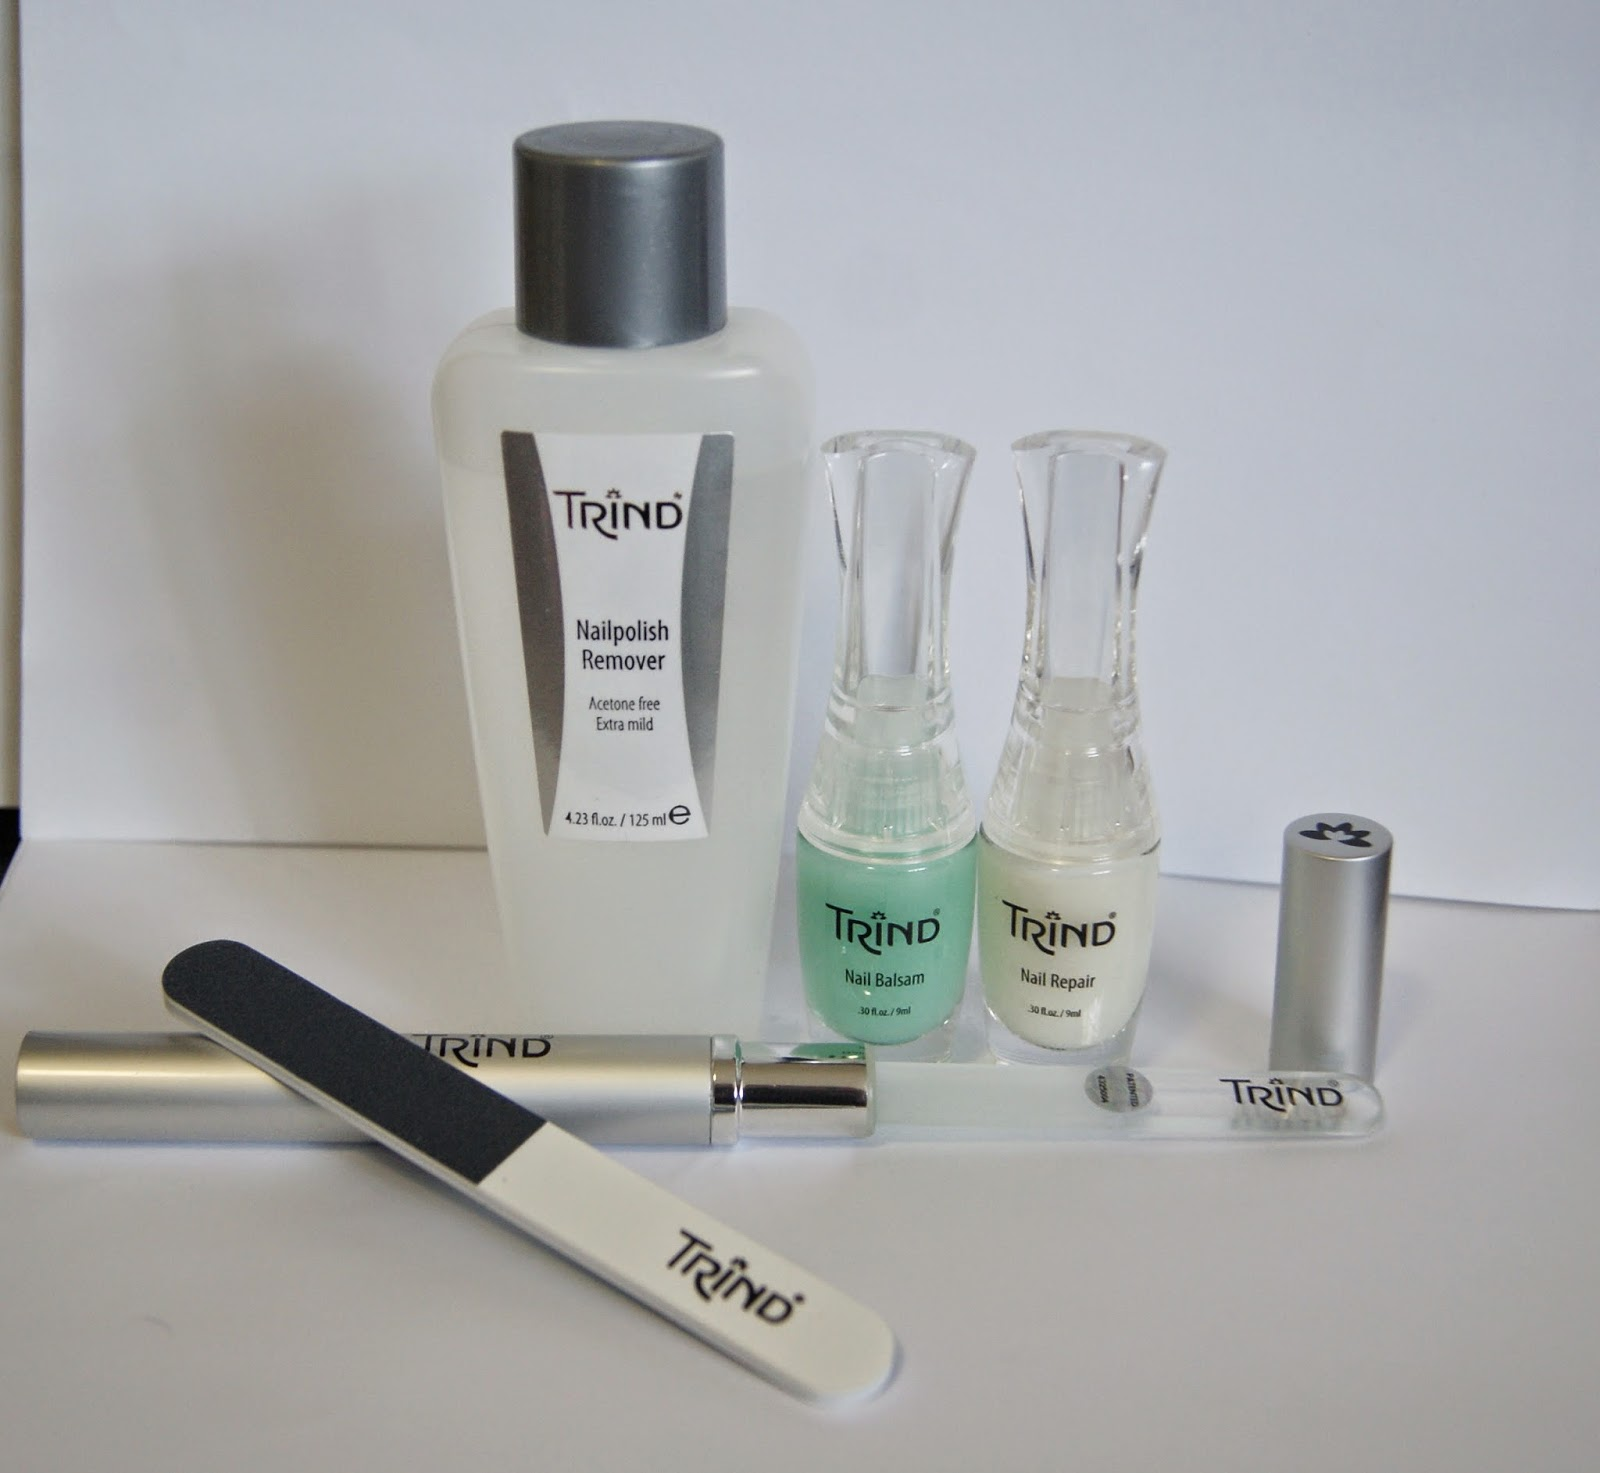 Trind Natural Nail Moist and Shiny Kit, Acetone Free Nailpolish Remover, Professional Glass File, Magic, Buffer, Balsam, Repair, Beauty, The Purple Scarf, Toronto, Melanie_Ps, Canada, Dutch Company, Review